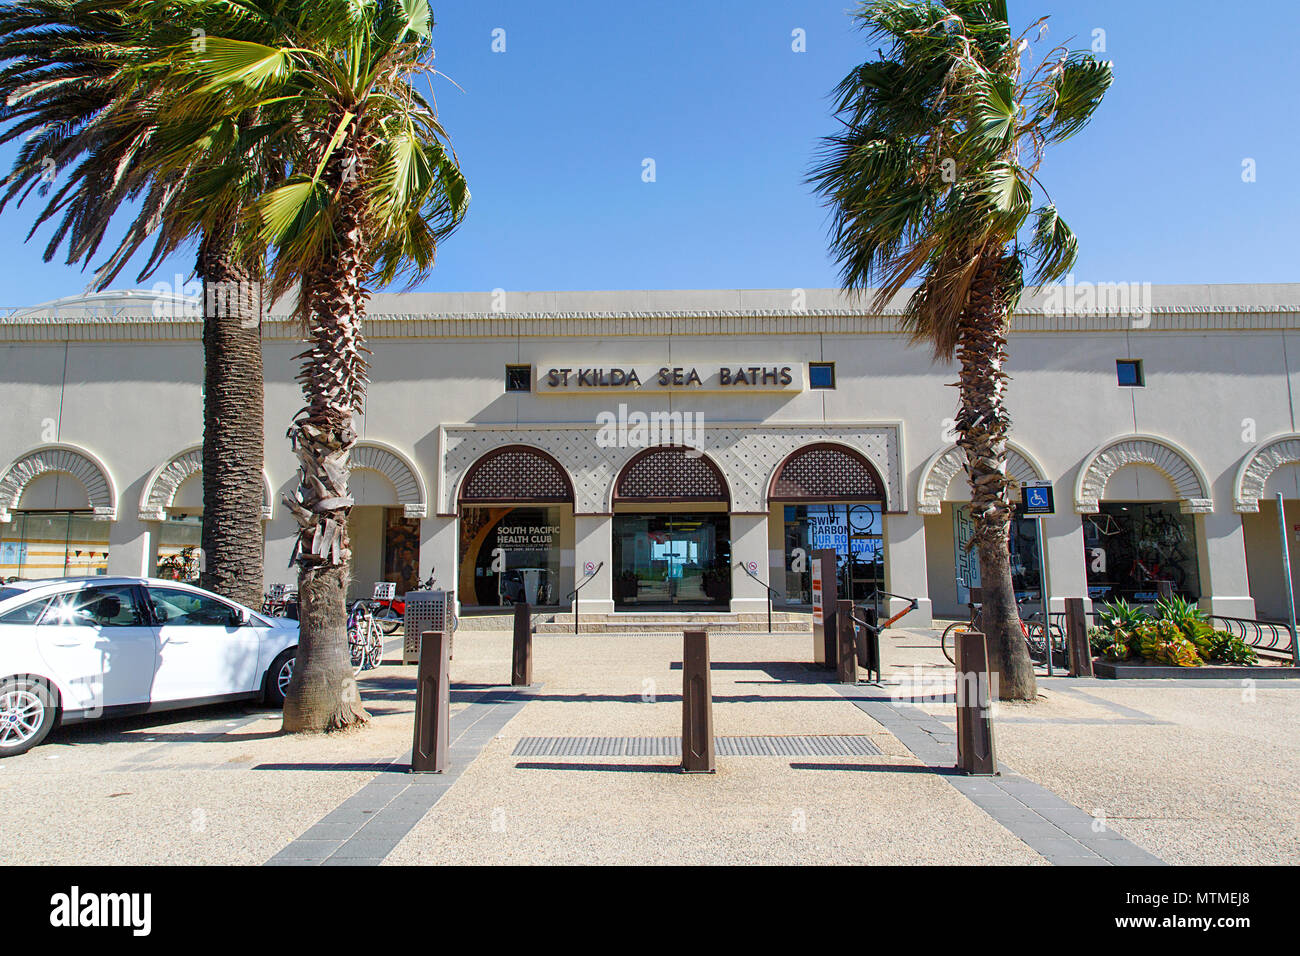 Melbourne, Australia: April 13, 2018: St Kilda Sea Baths contain Australia's only indoor heated sea-water pool, a hydrotherapy spa and a steam room. - Stock Image